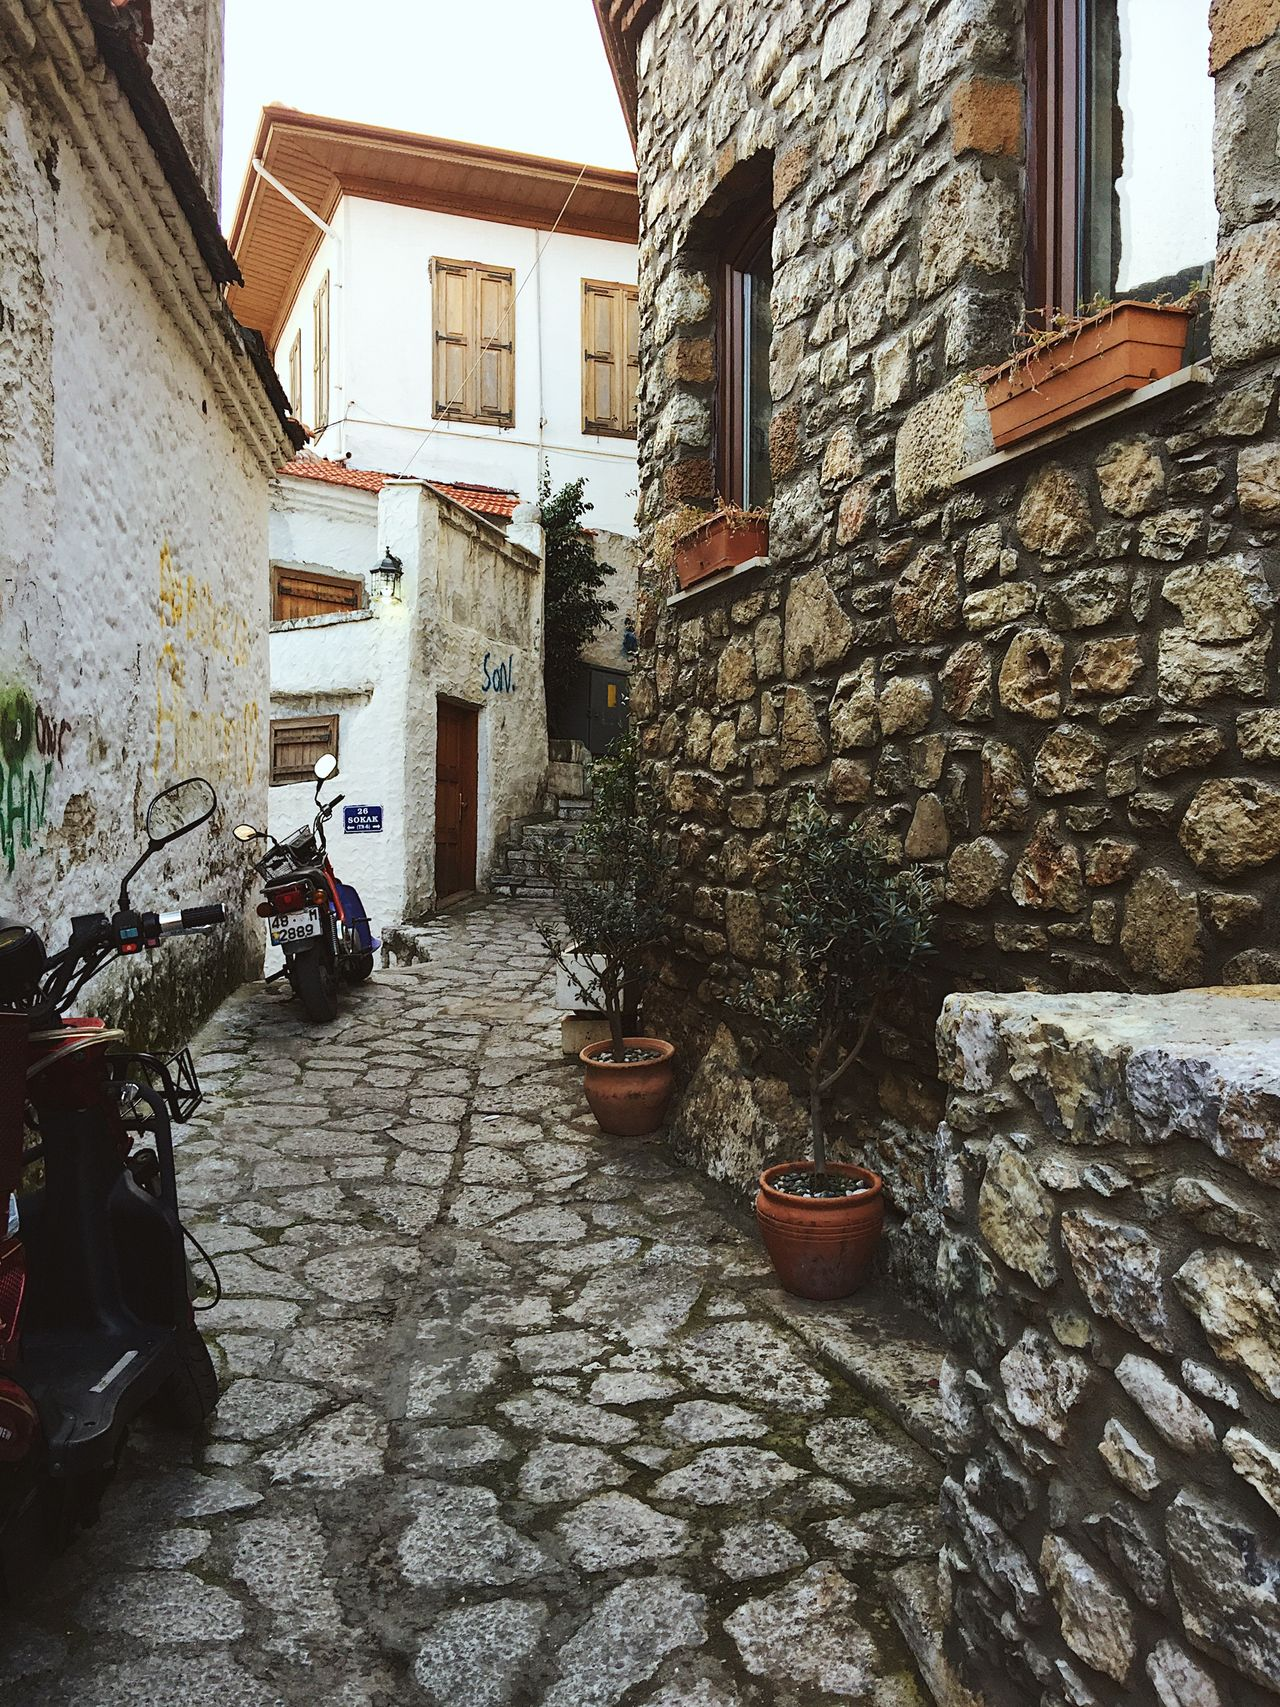 Old town of Marmaris, Turkey Architecture Building Exterior Built Structure Marmaris Motorbike Nature Old City Old Town Outdoors Scooter Turkey